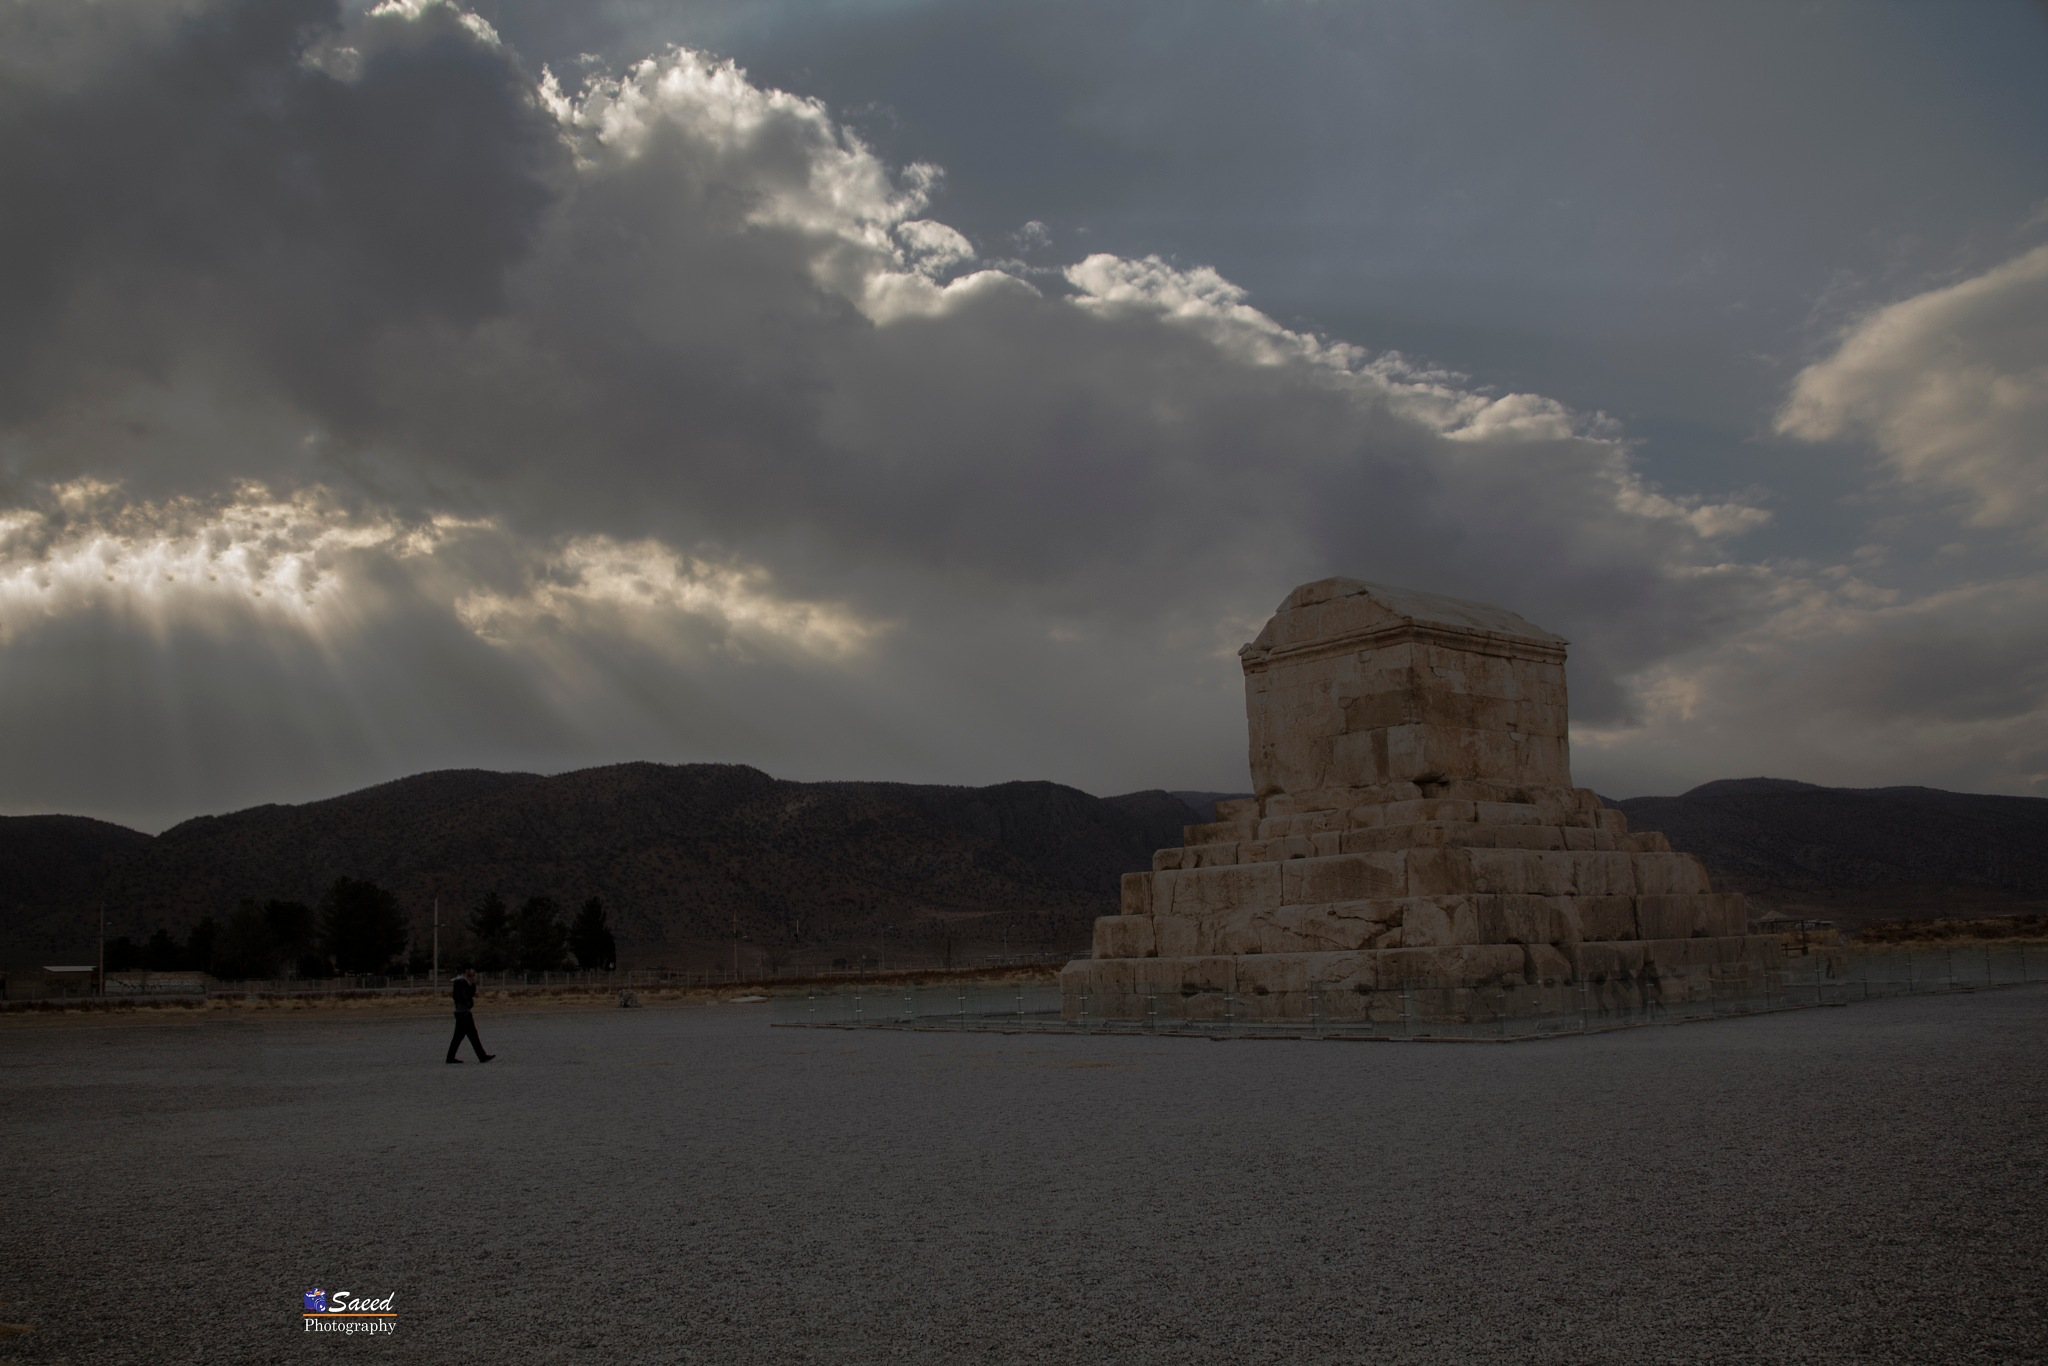 The Great Cyrus by Saeed Khansarian